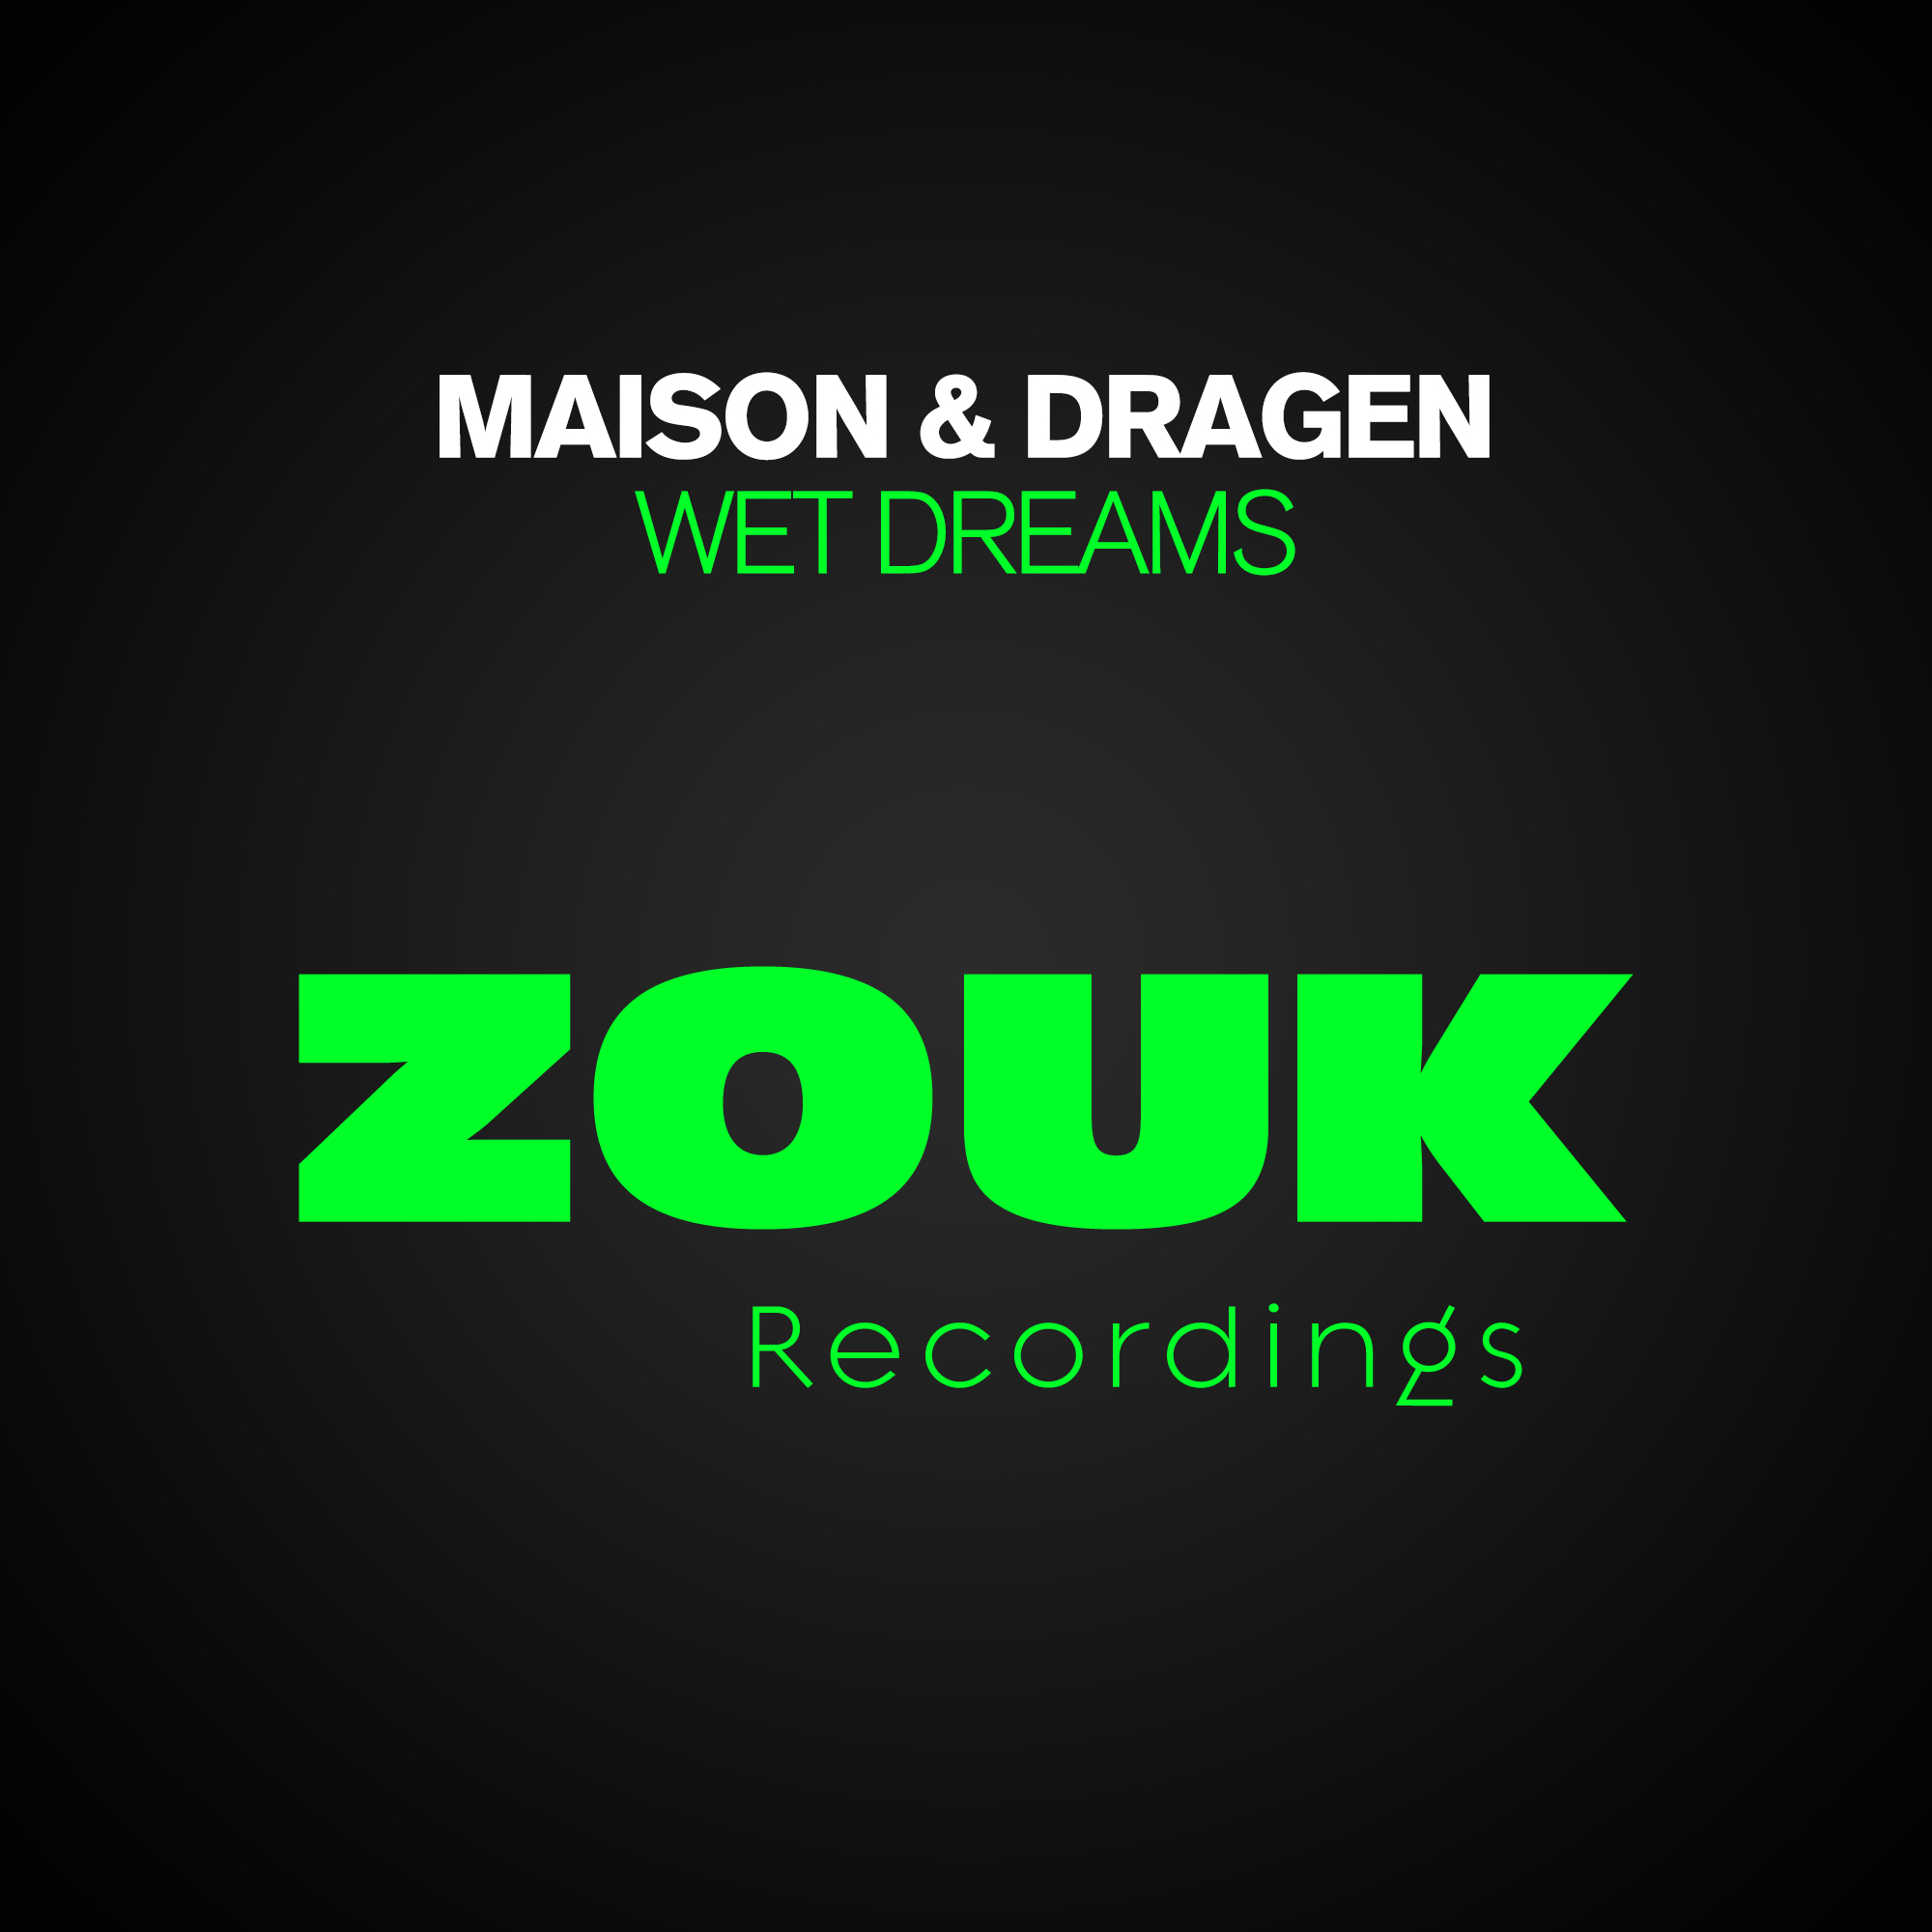 Maison & Dragen – Wet Dreams